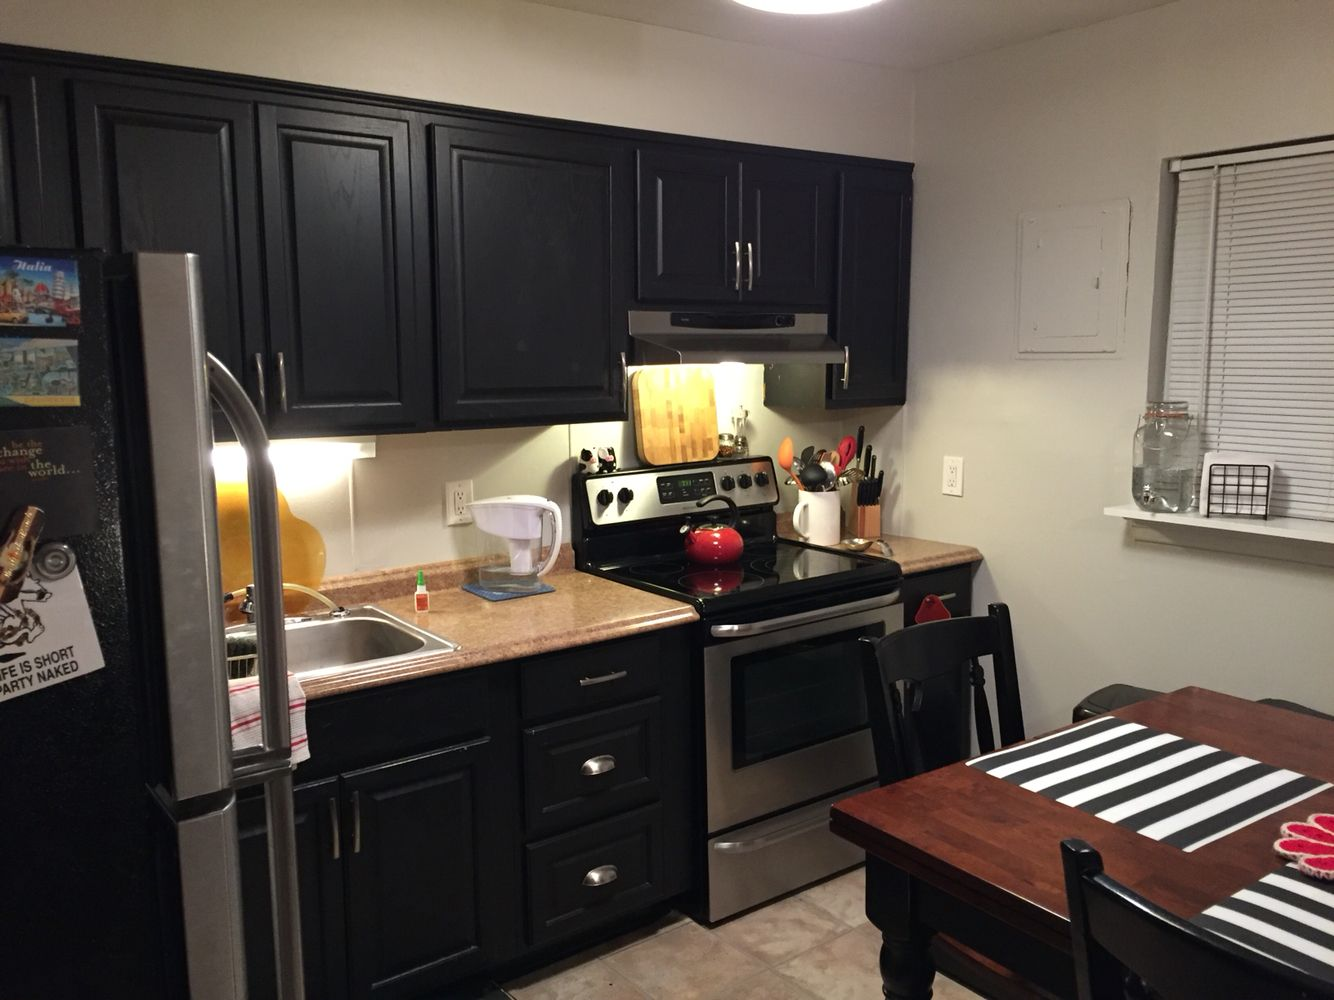 Best Behr Toasty Gray Walls With Black Painted Kitchen Cabinets 640 x 480